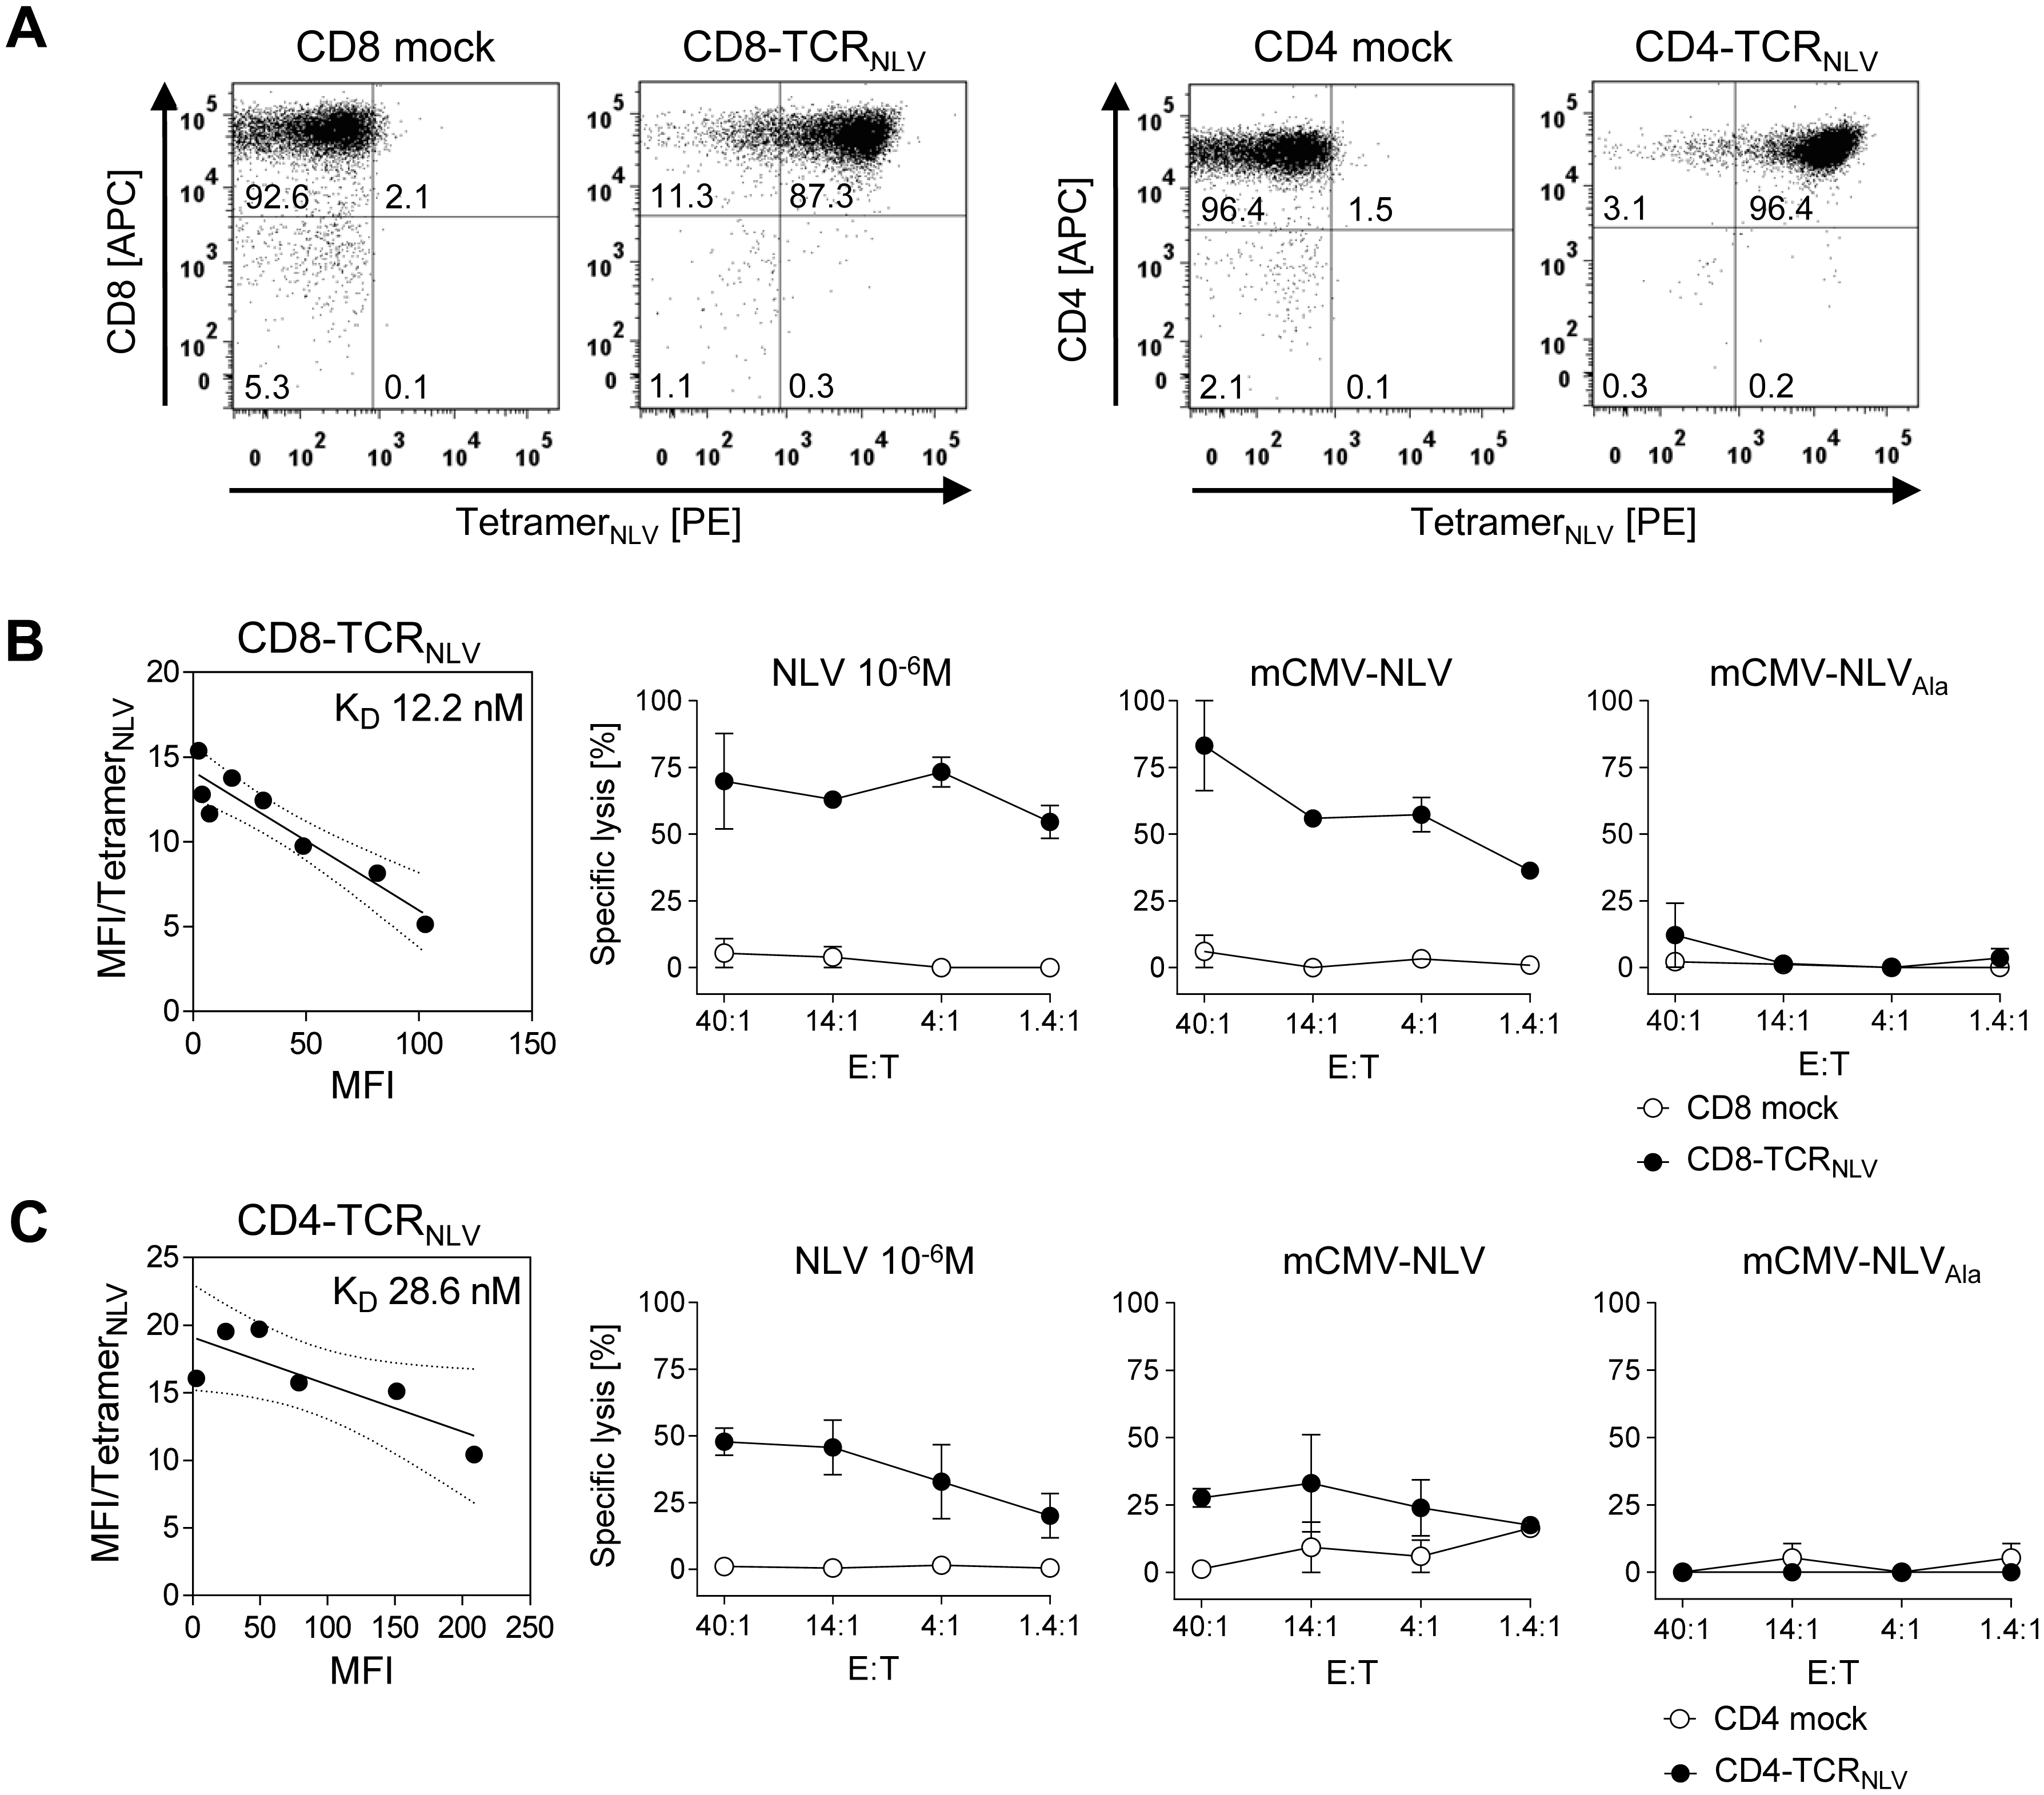 Transgenic TCR<sub>NLV</sub> expression, structural avidity, and cytolytic activity of TCR-transduced human T-cell subsets.